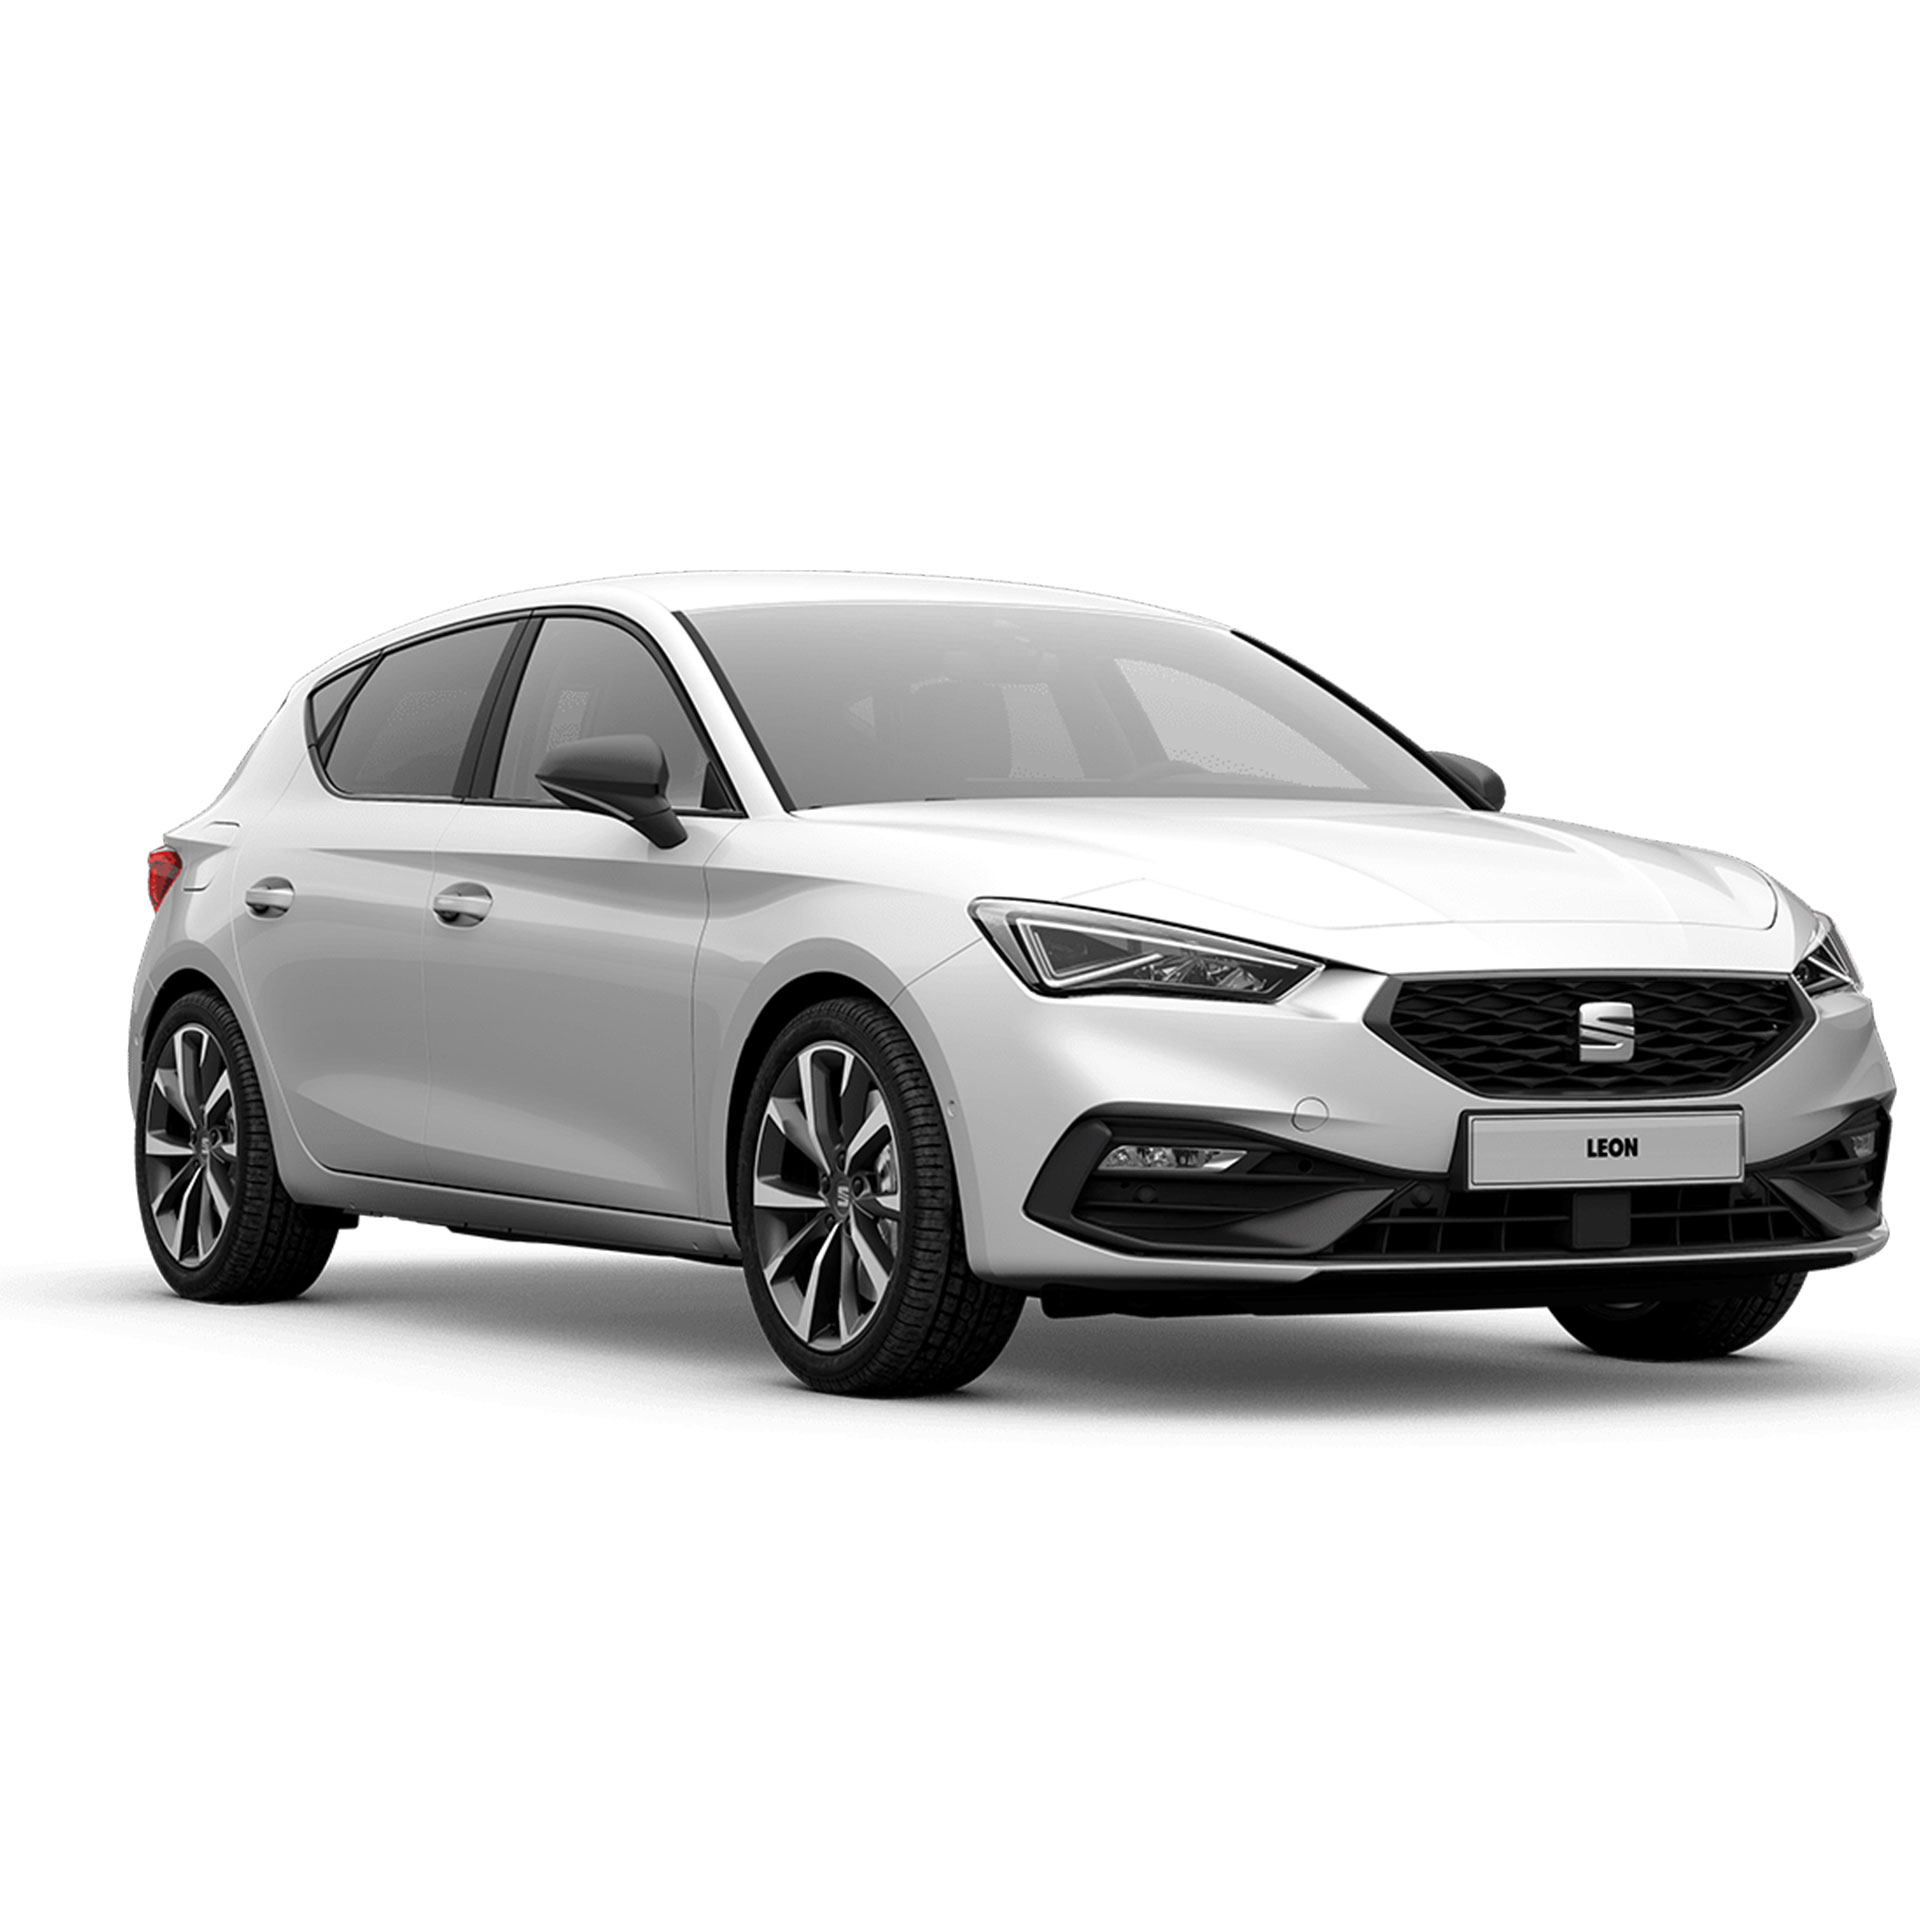 Seat Leon Boot Liners (2019 Onwards)